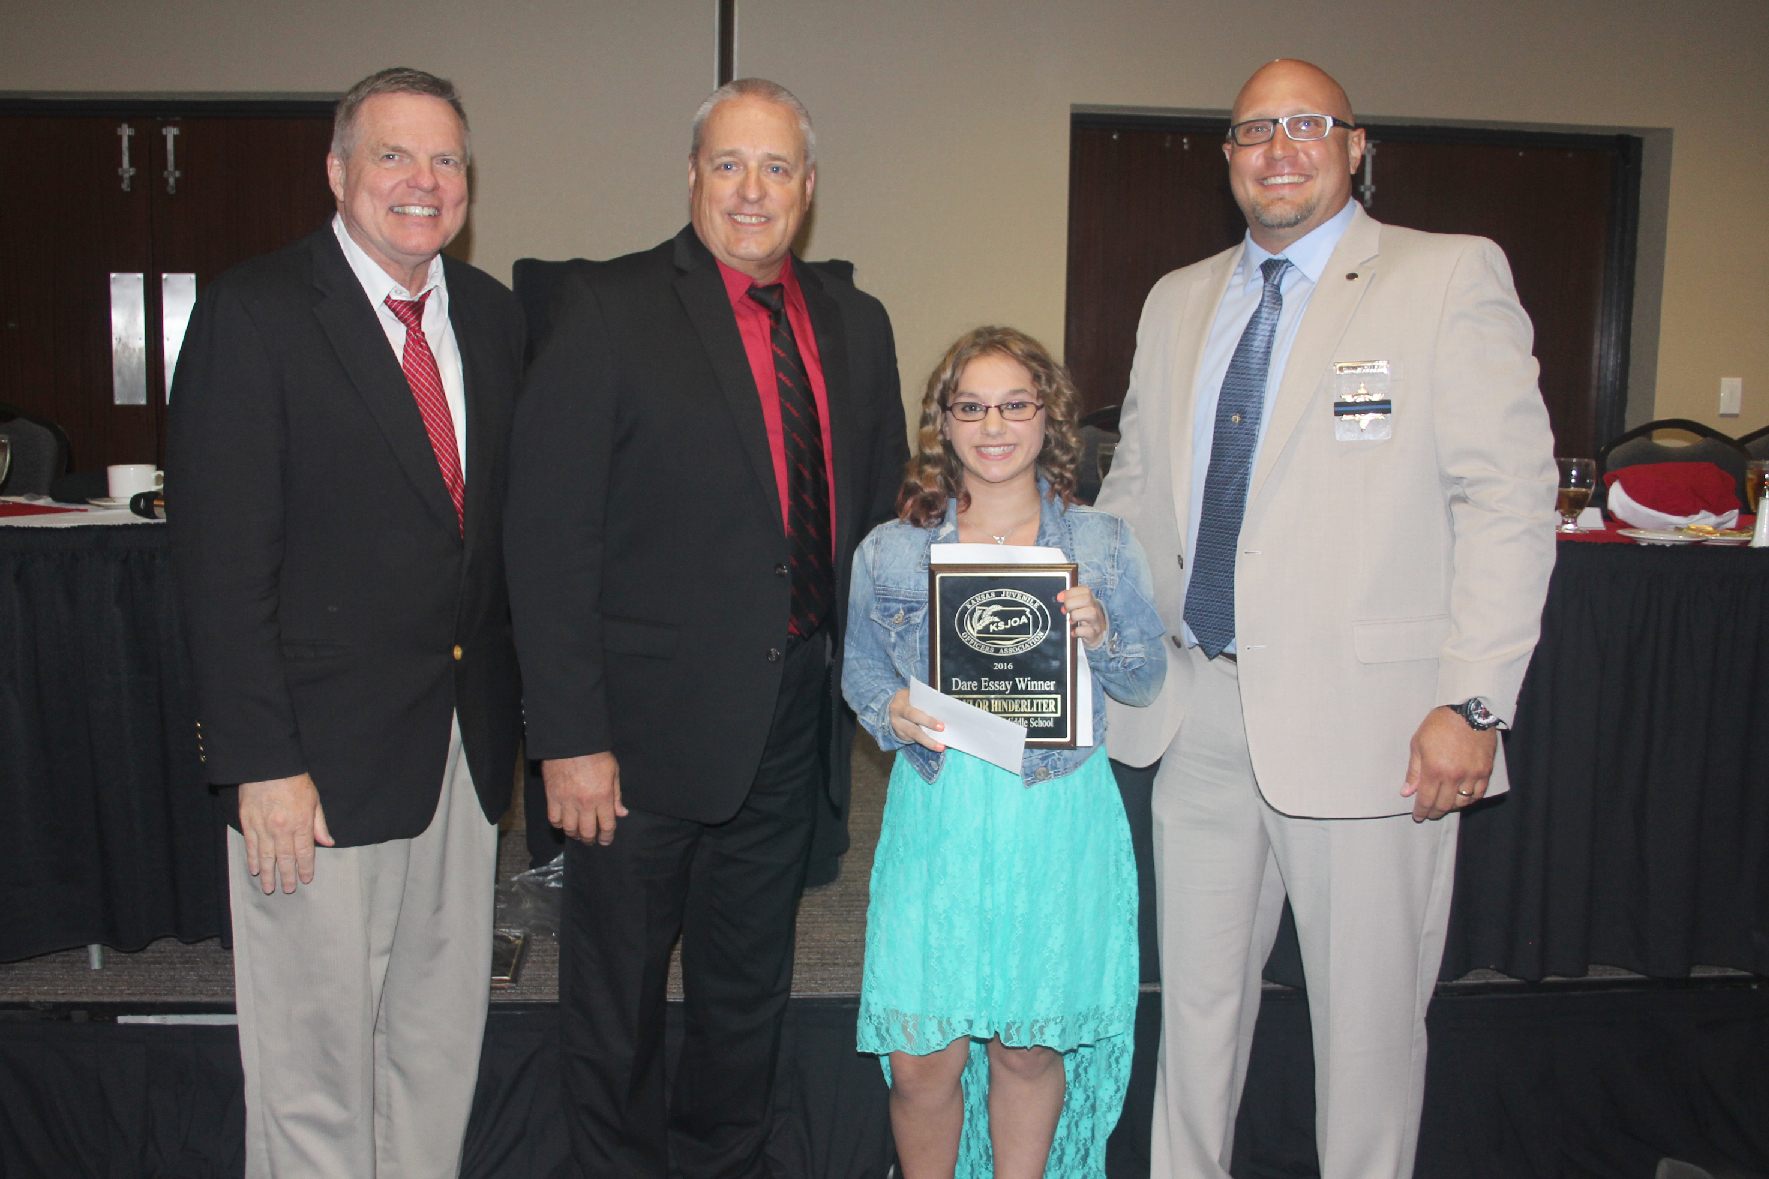 Lindsborg Student Wins State Contest